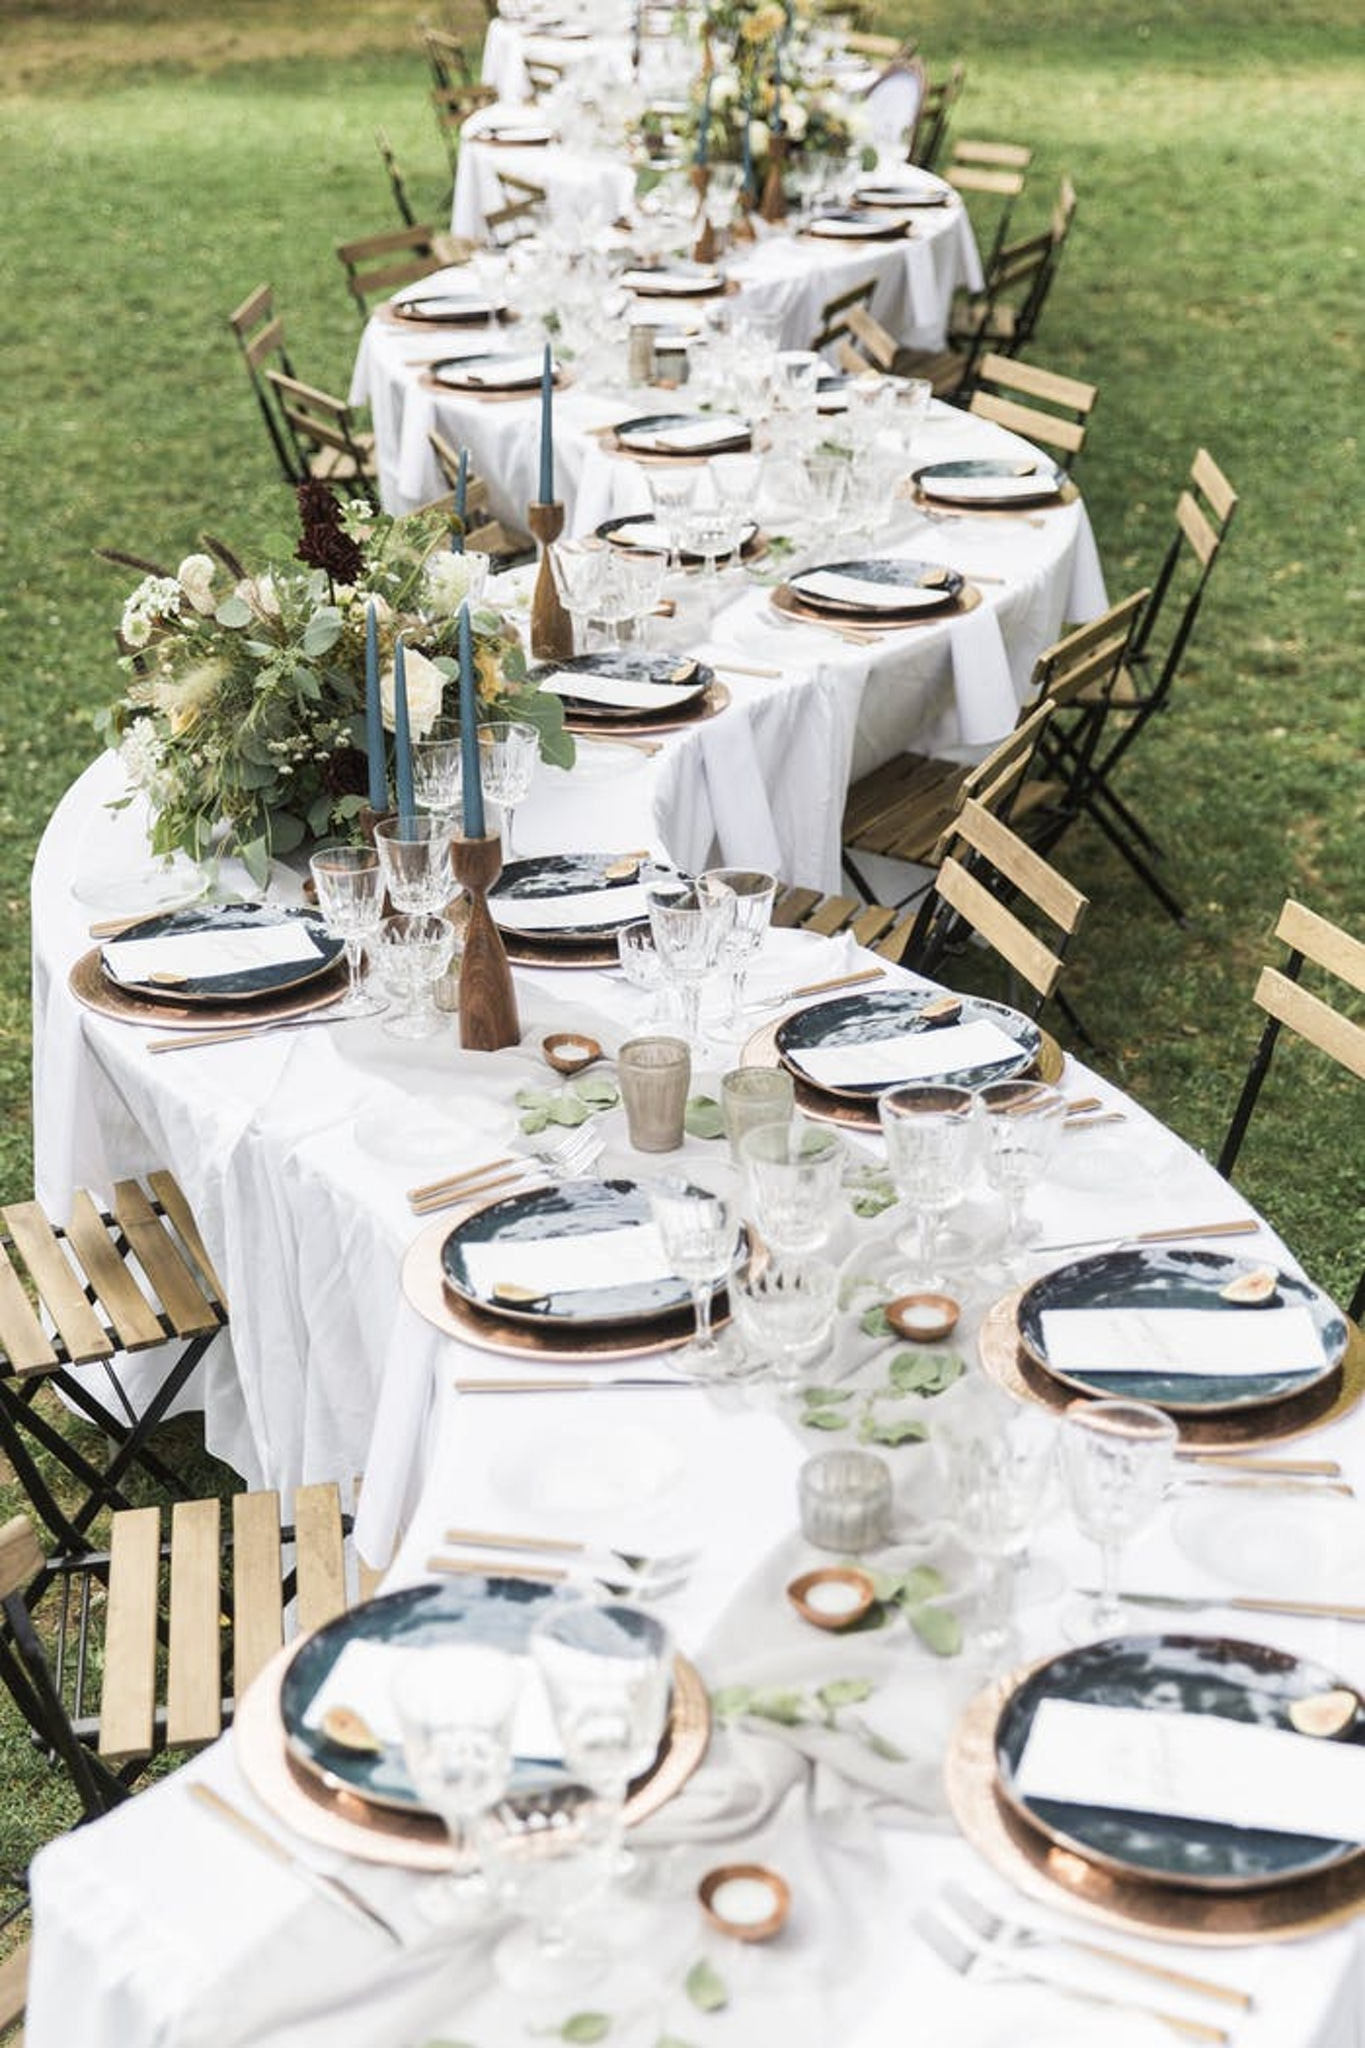 White winding wedding table with green accents and wooden chairs